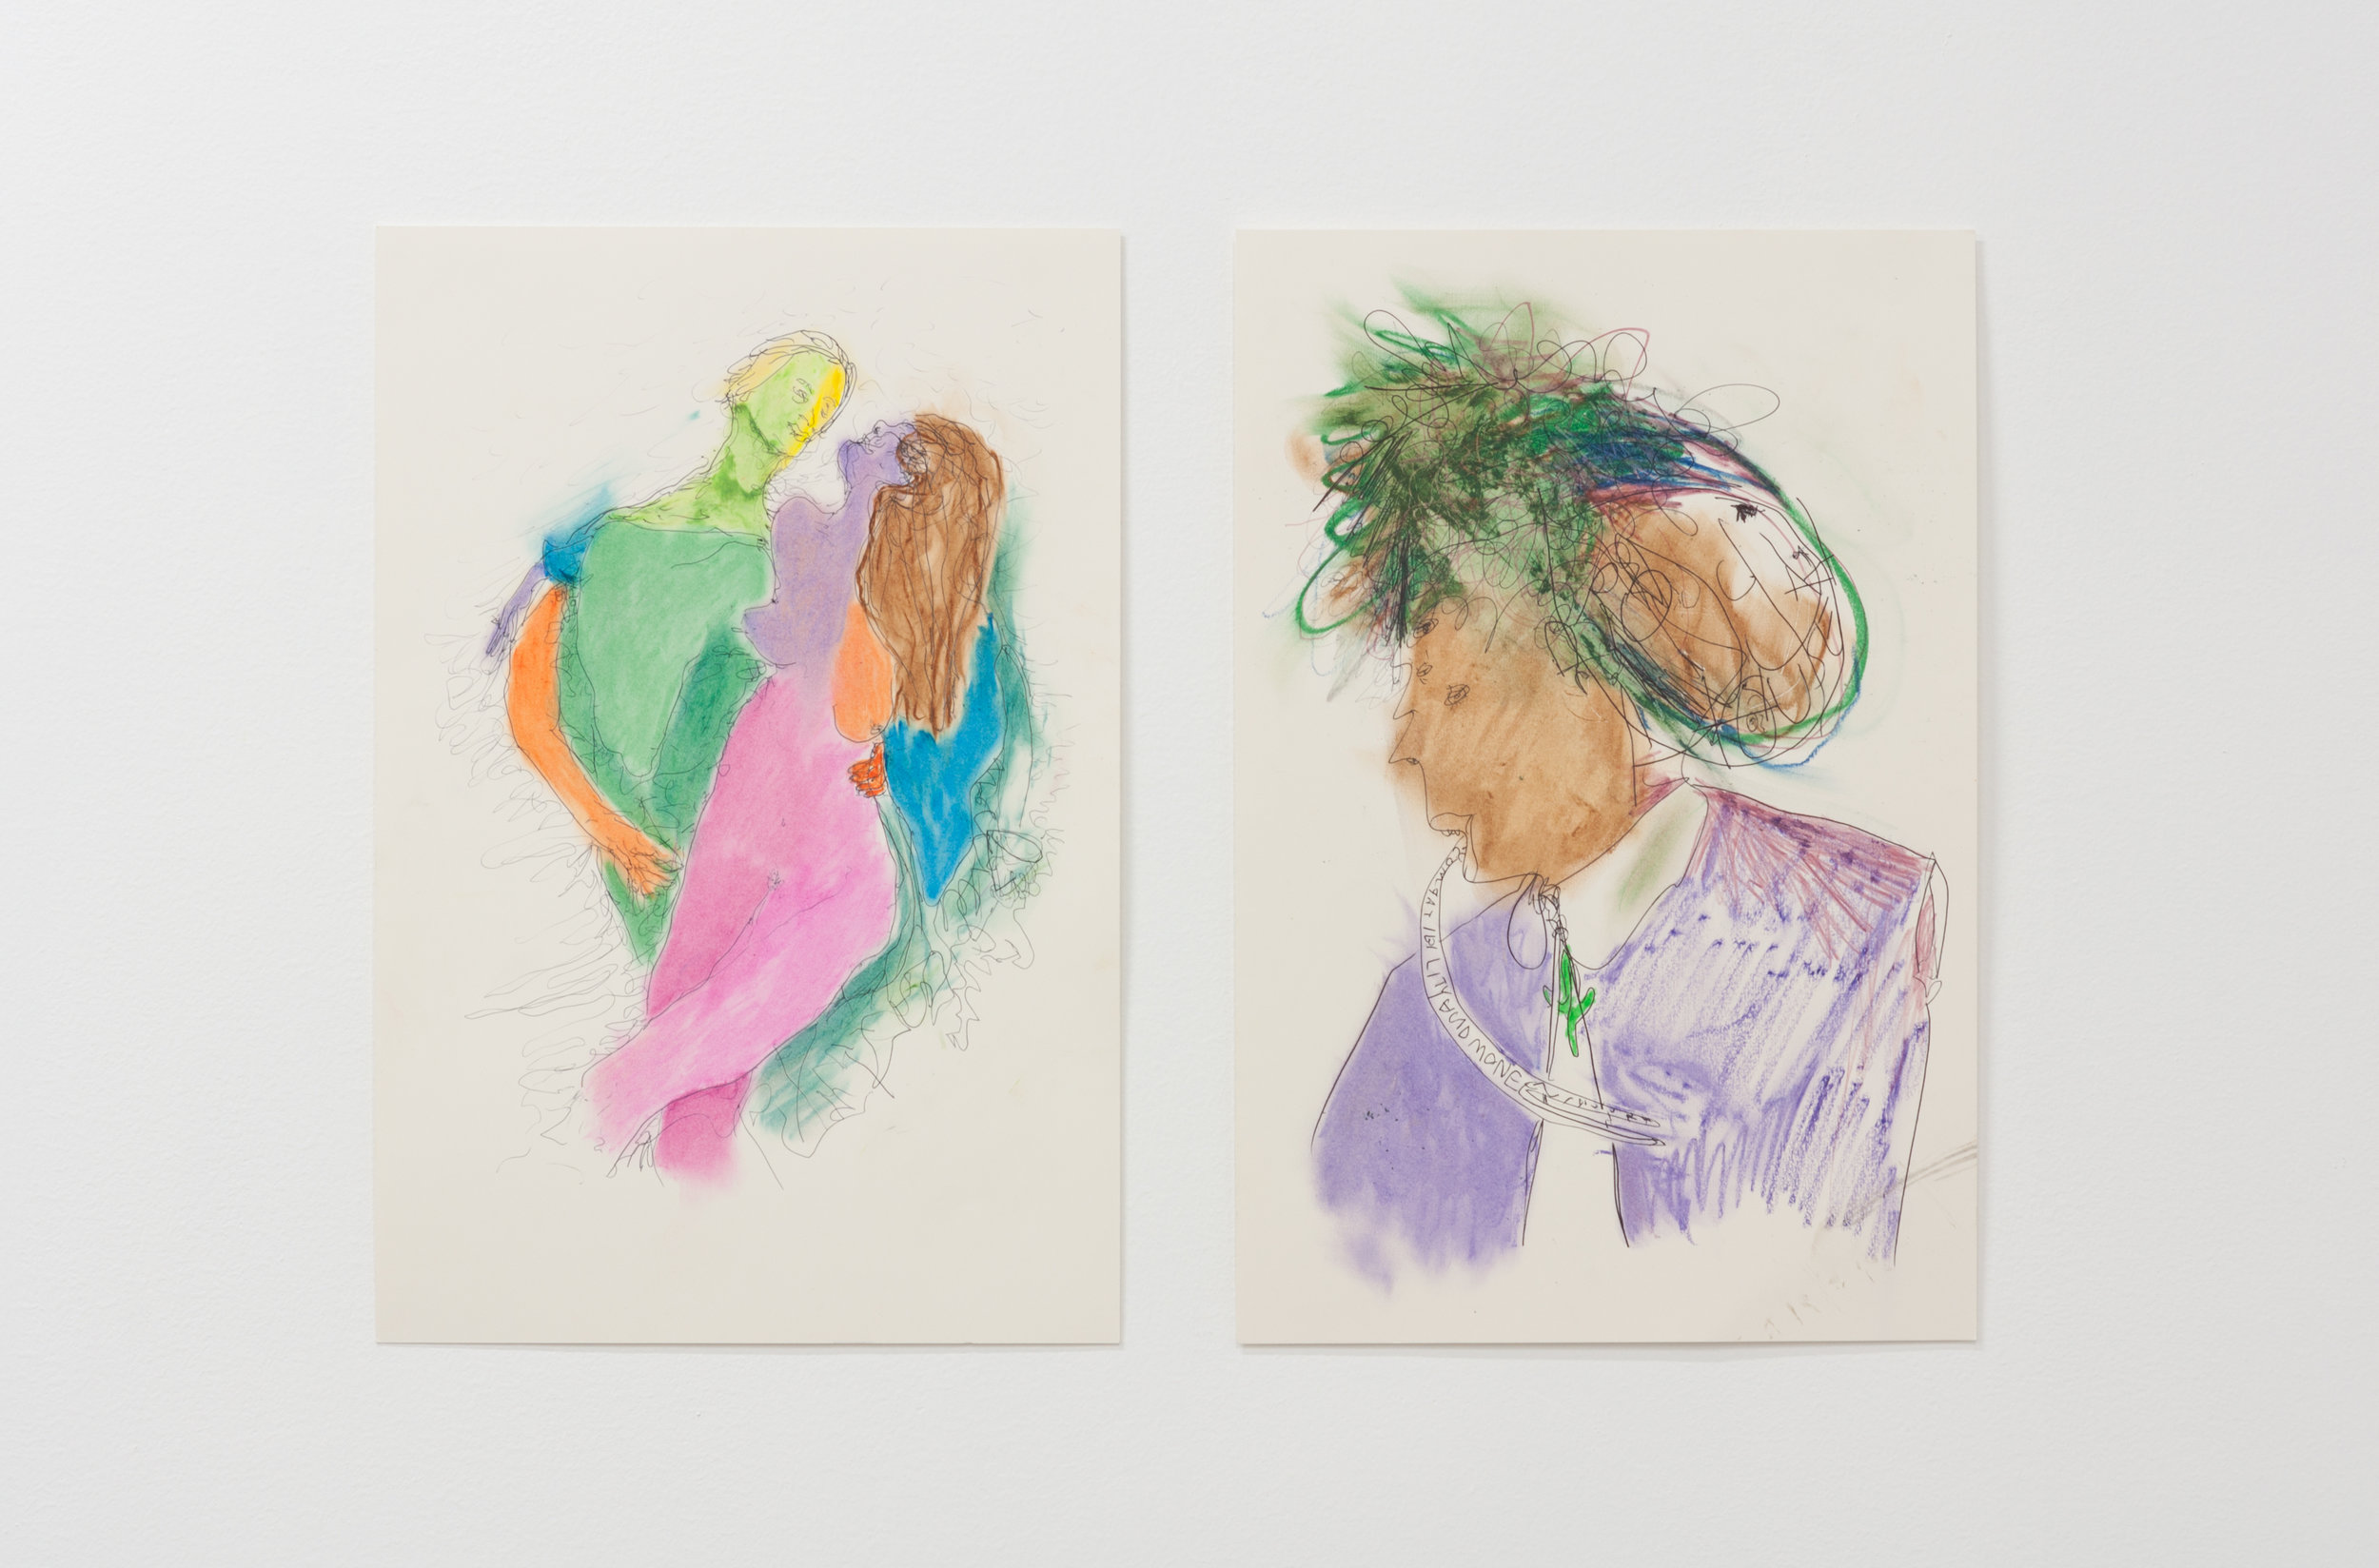 Jeff Lownsbury  Untitled (Two Figures) , 2016, oil pastel and pen  Compatibility and Money , 2016, oil pastel and pen